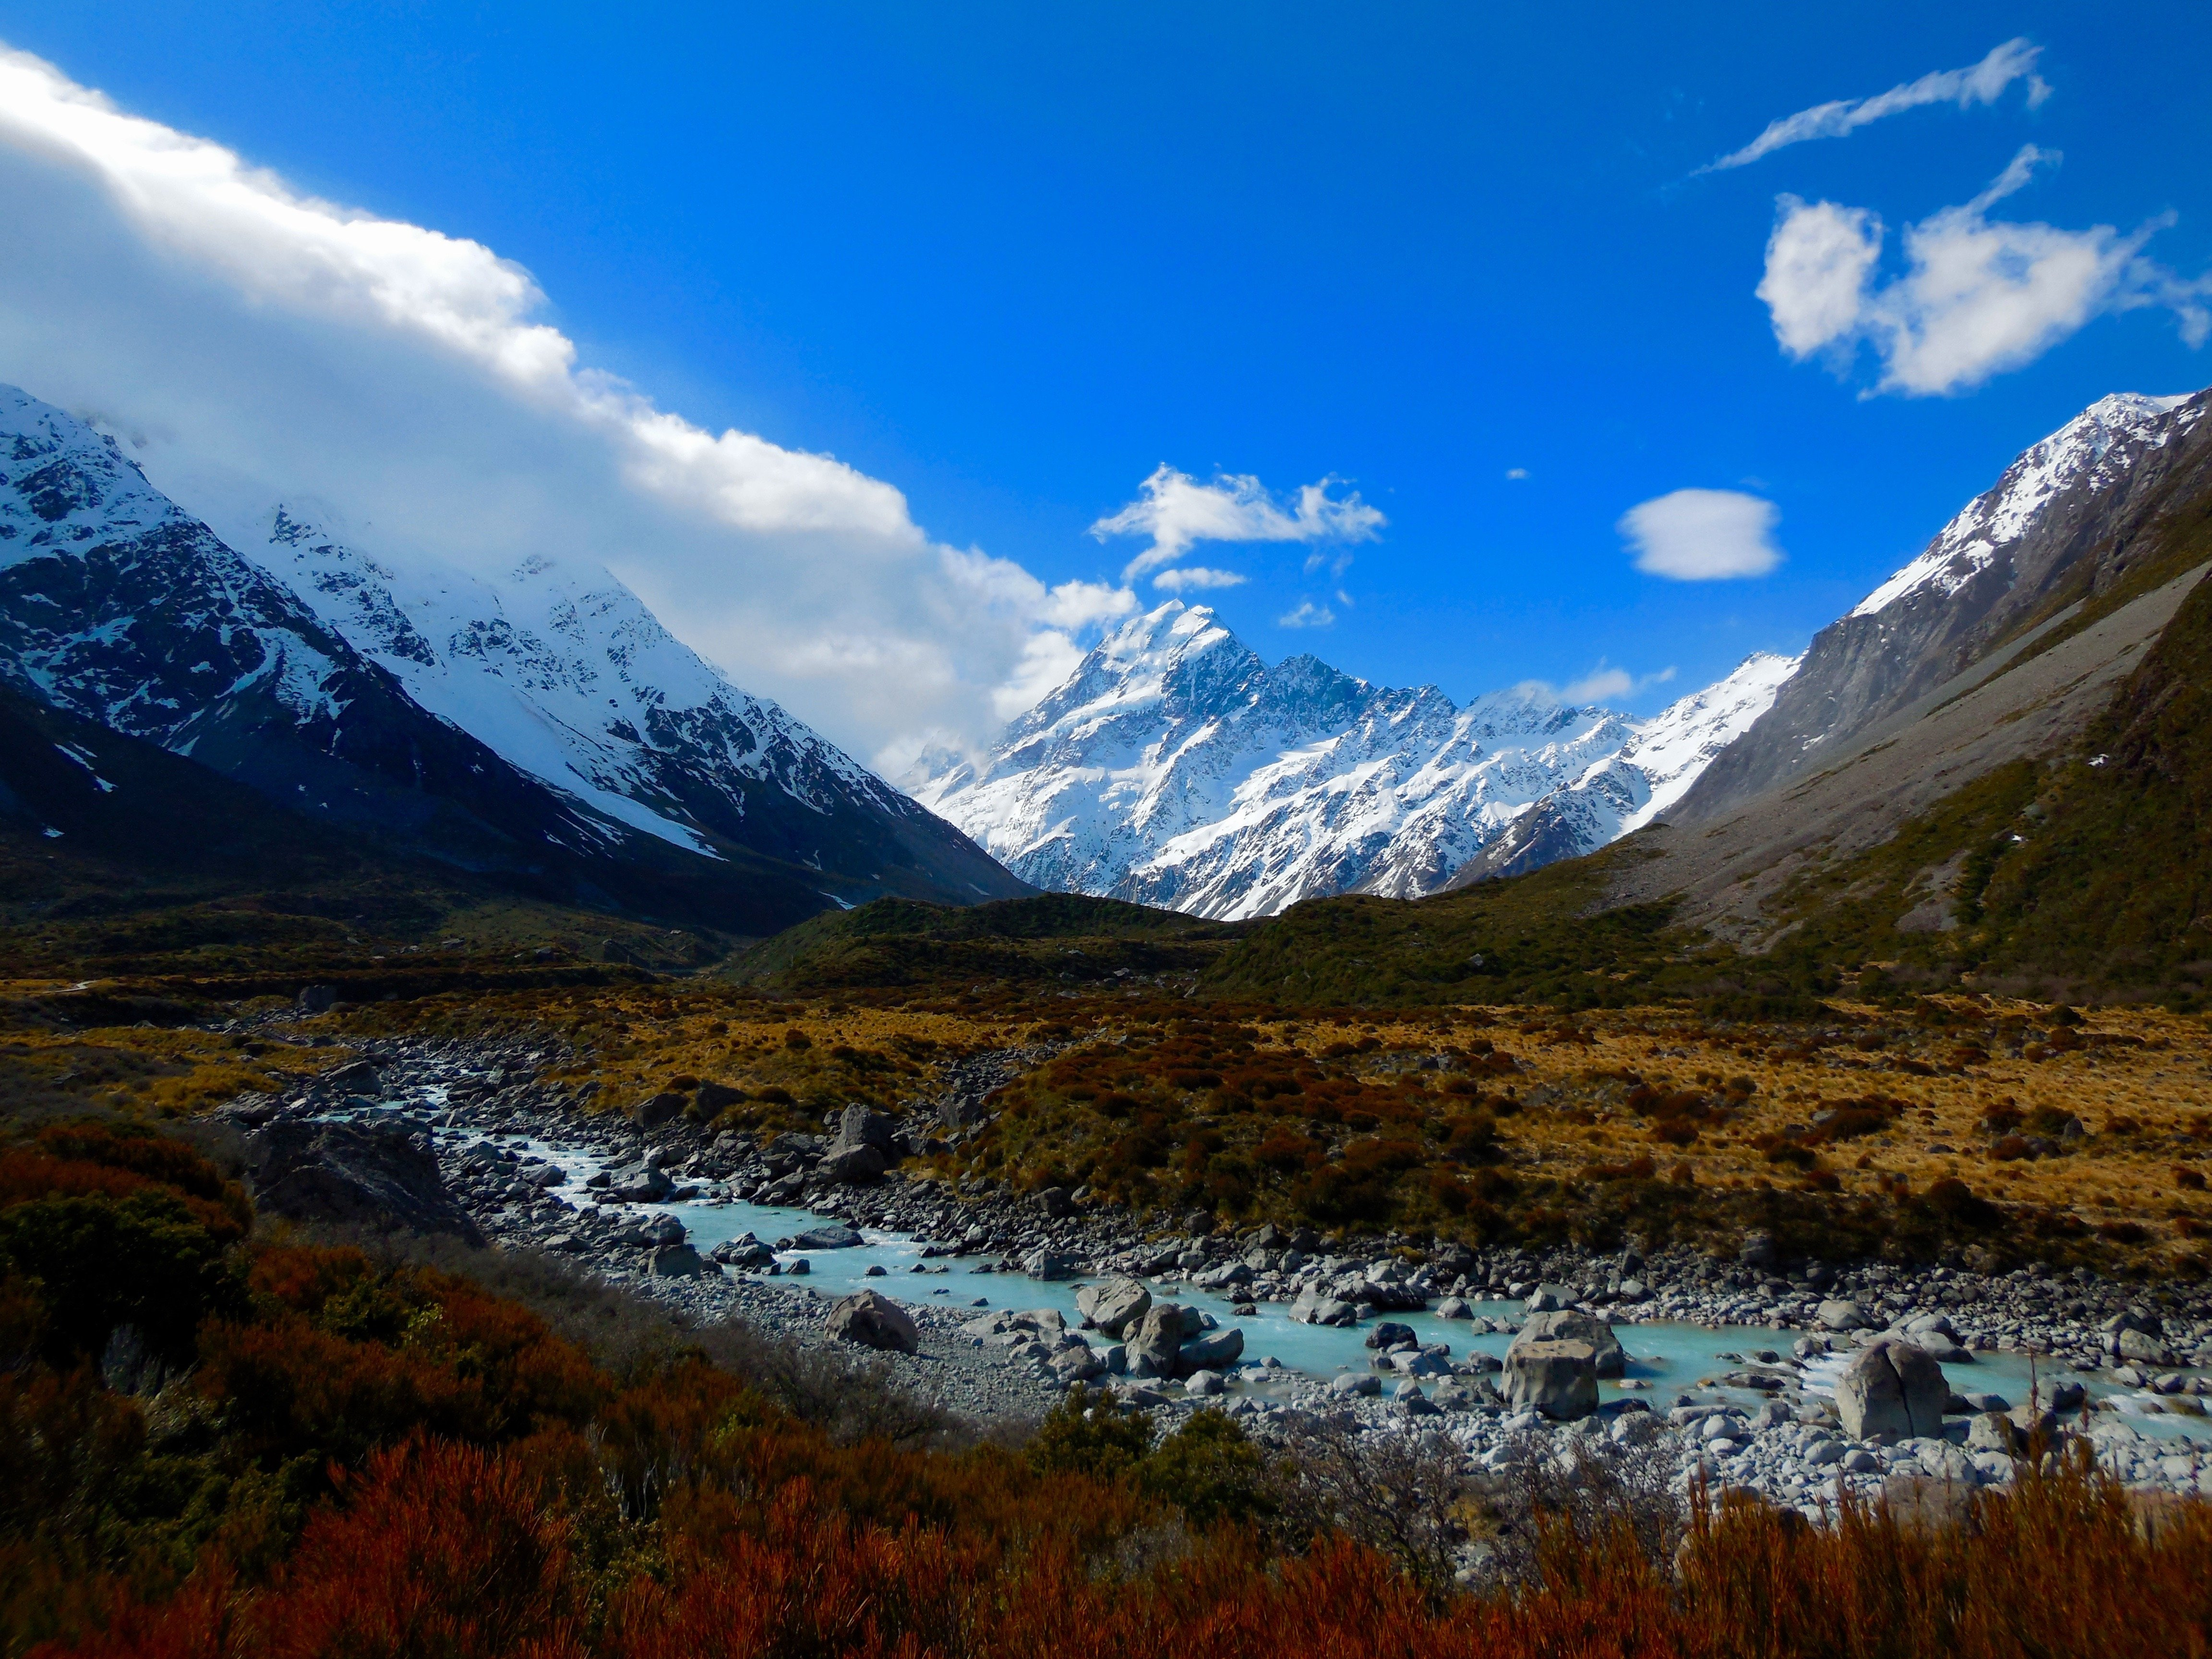 Newzealand Wallpaper: Cook Wallpapers, Photos And Desktop Backgrounds Up To 8K